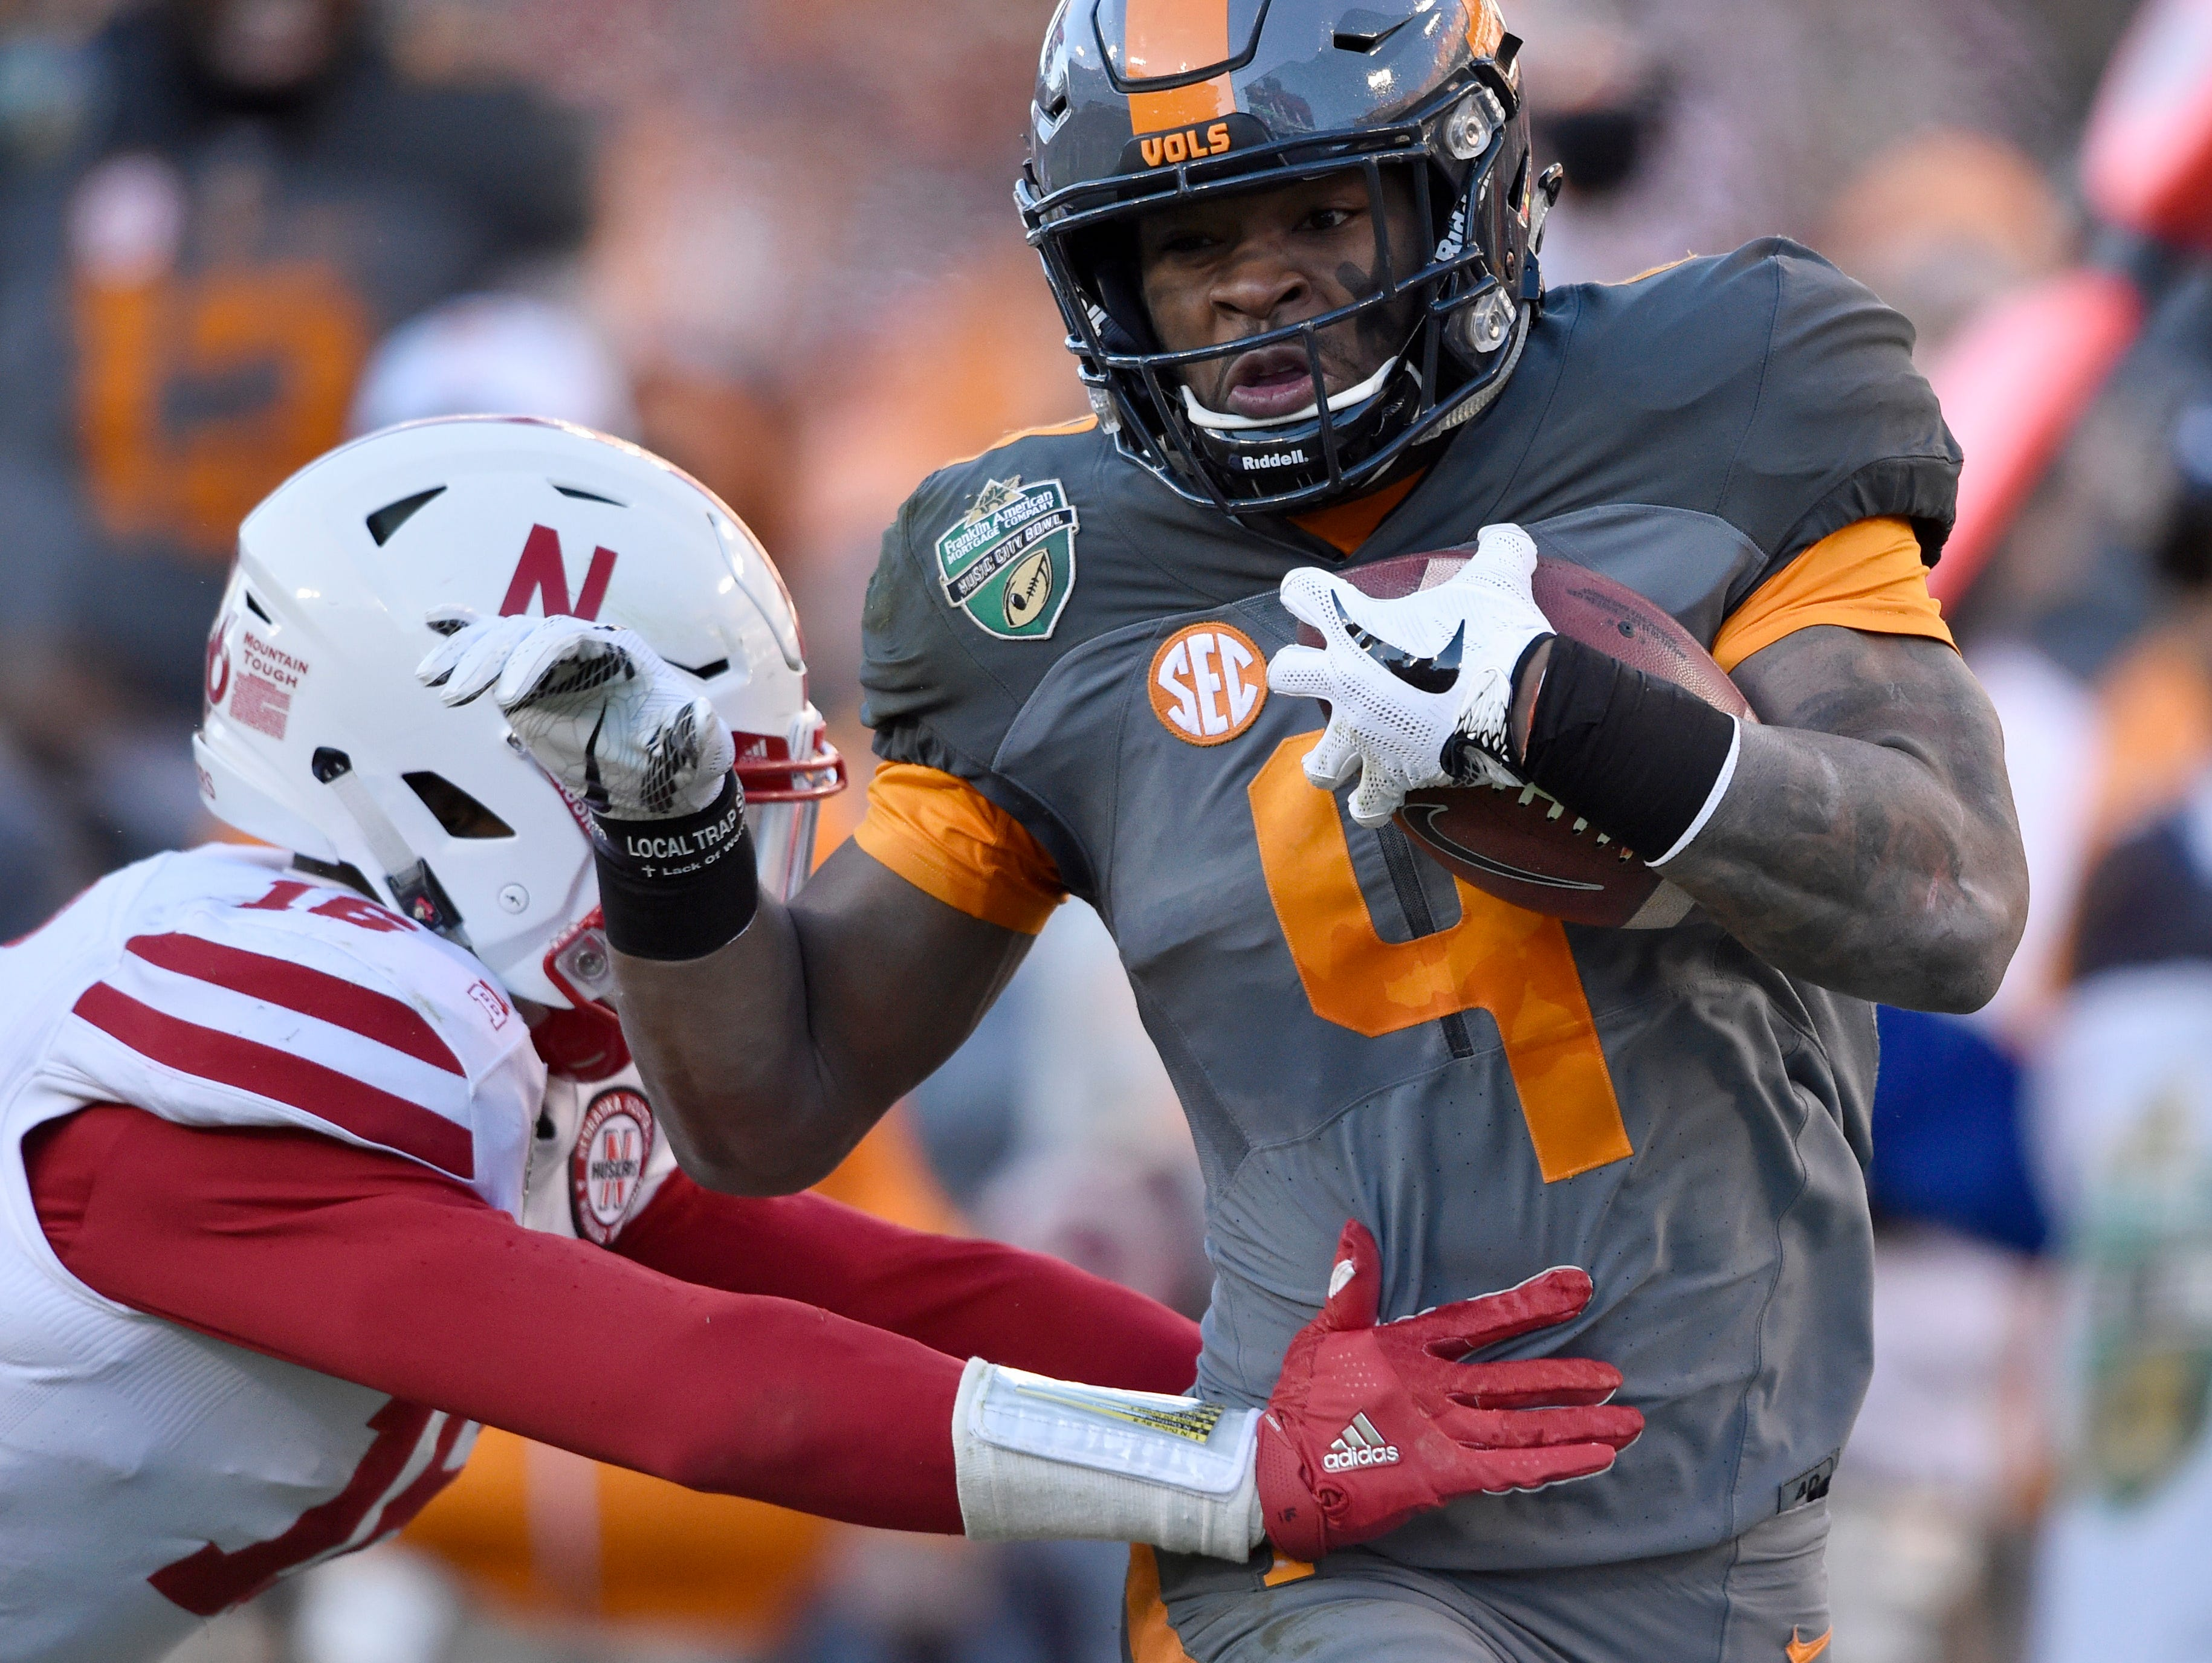 Nebraska Cornhuskers safety Antonio Reed (16) can't stop Tennessee Volunteers running back John Kelly (4) on his way to the Vols' first touchdown in the first half of the Franklin American Mortgage Music City Bowl at Nissan Stadium in Nashville, Tenn., Friday, Dec. 30, 2016.